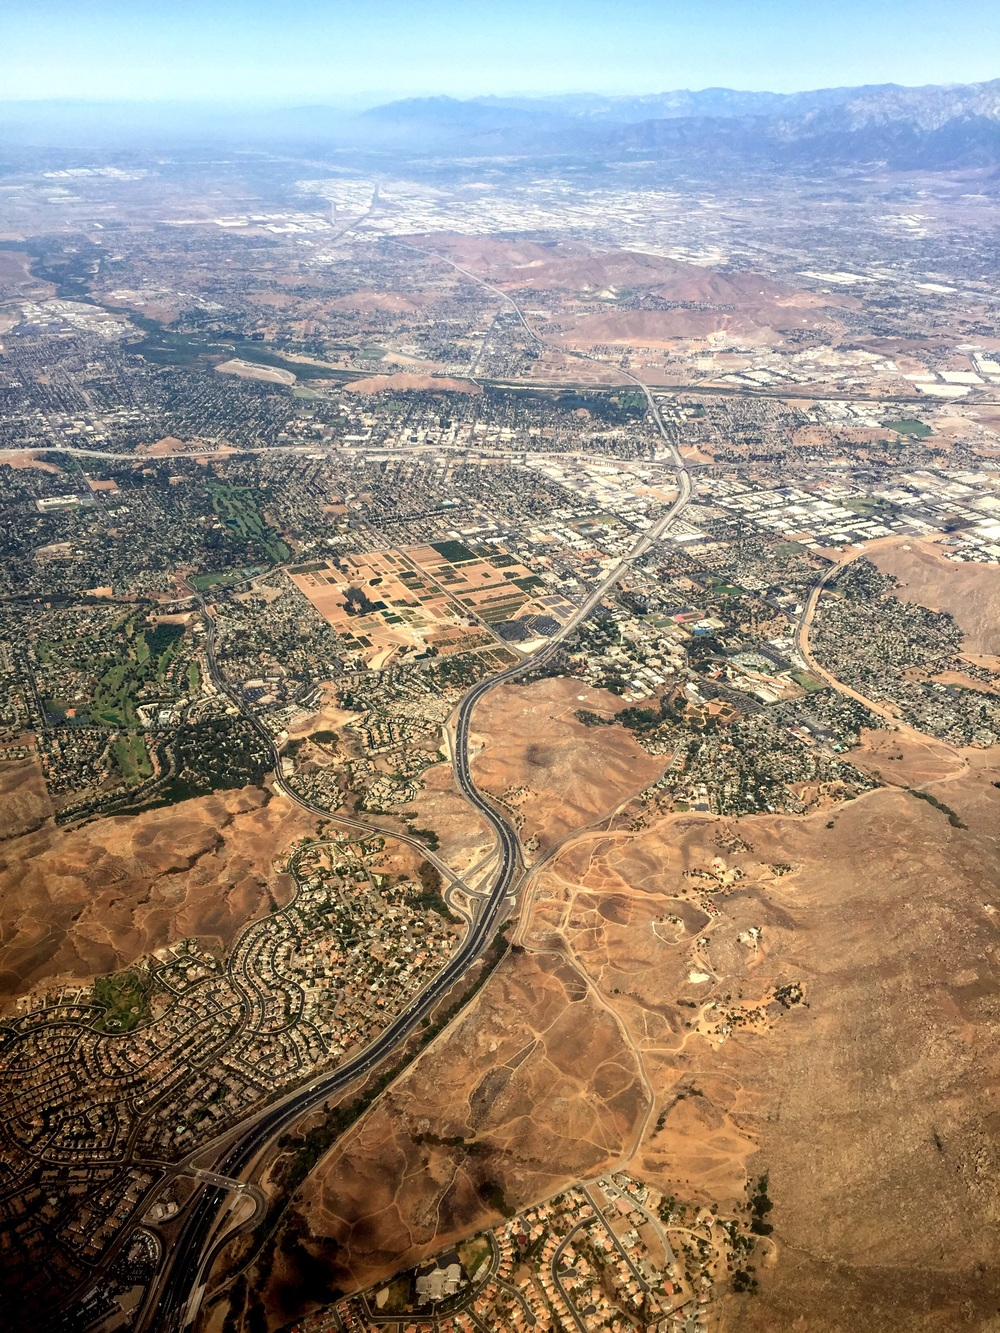 Over Moreno County - Box Springs as we begin the approach for a slightly early landing at John Wayne Airport in Orange County, where the local time is 10:56 AM.